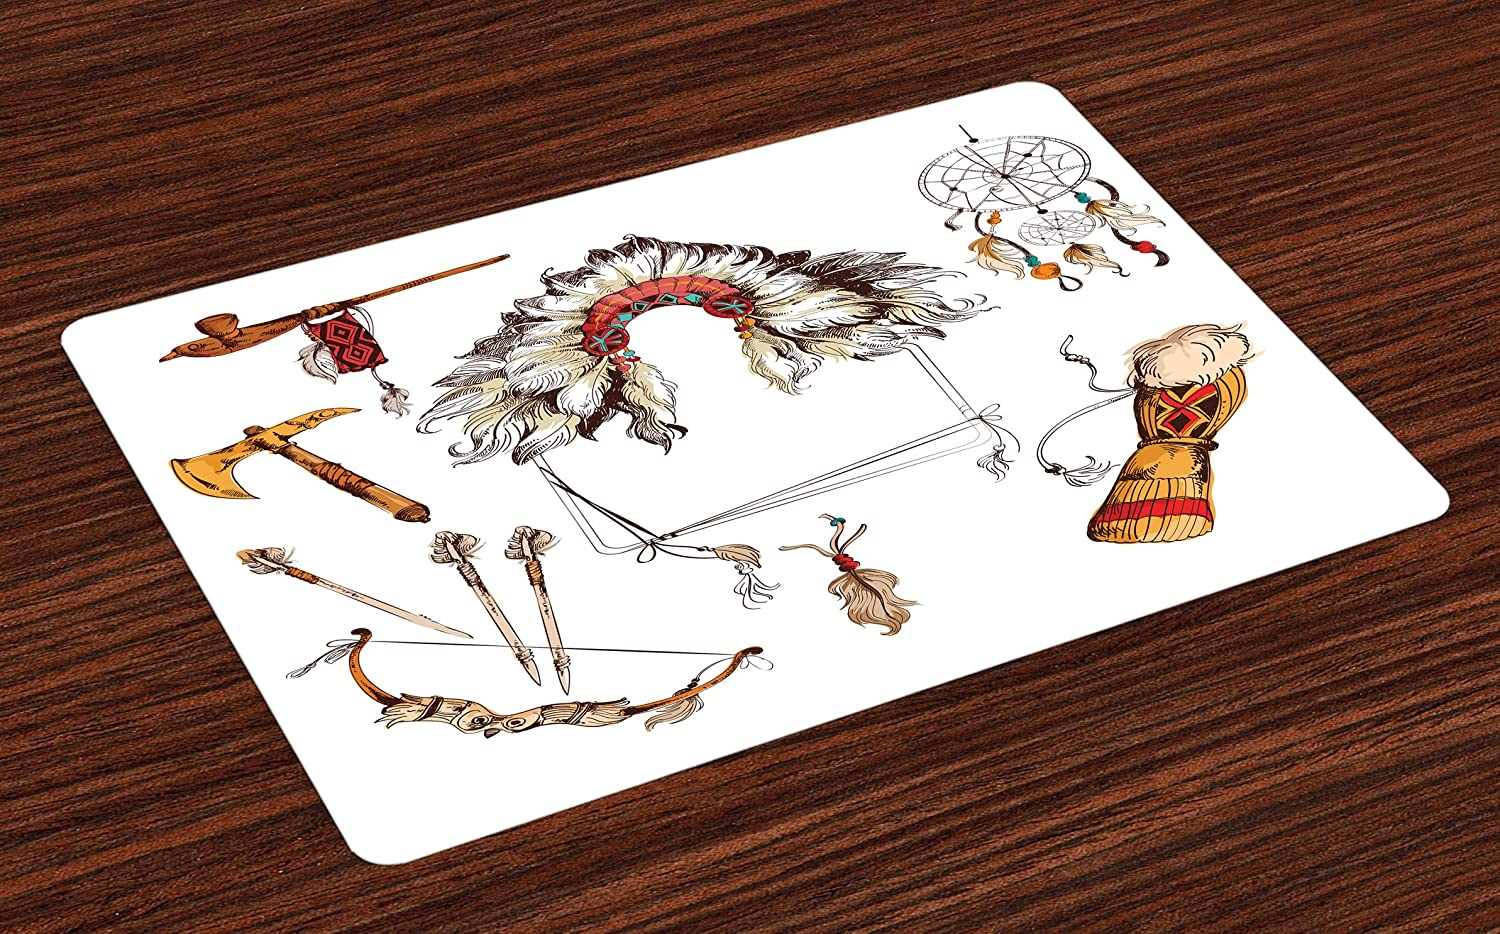 Ambesonne Tribal Place Mats Set of 4, Tomahawk Native Chef Dreamcatcher Feather Old World Motifs Image, Washable Fabric Placemats for Dining Room Kitchen Table Decor, Marigold Beige